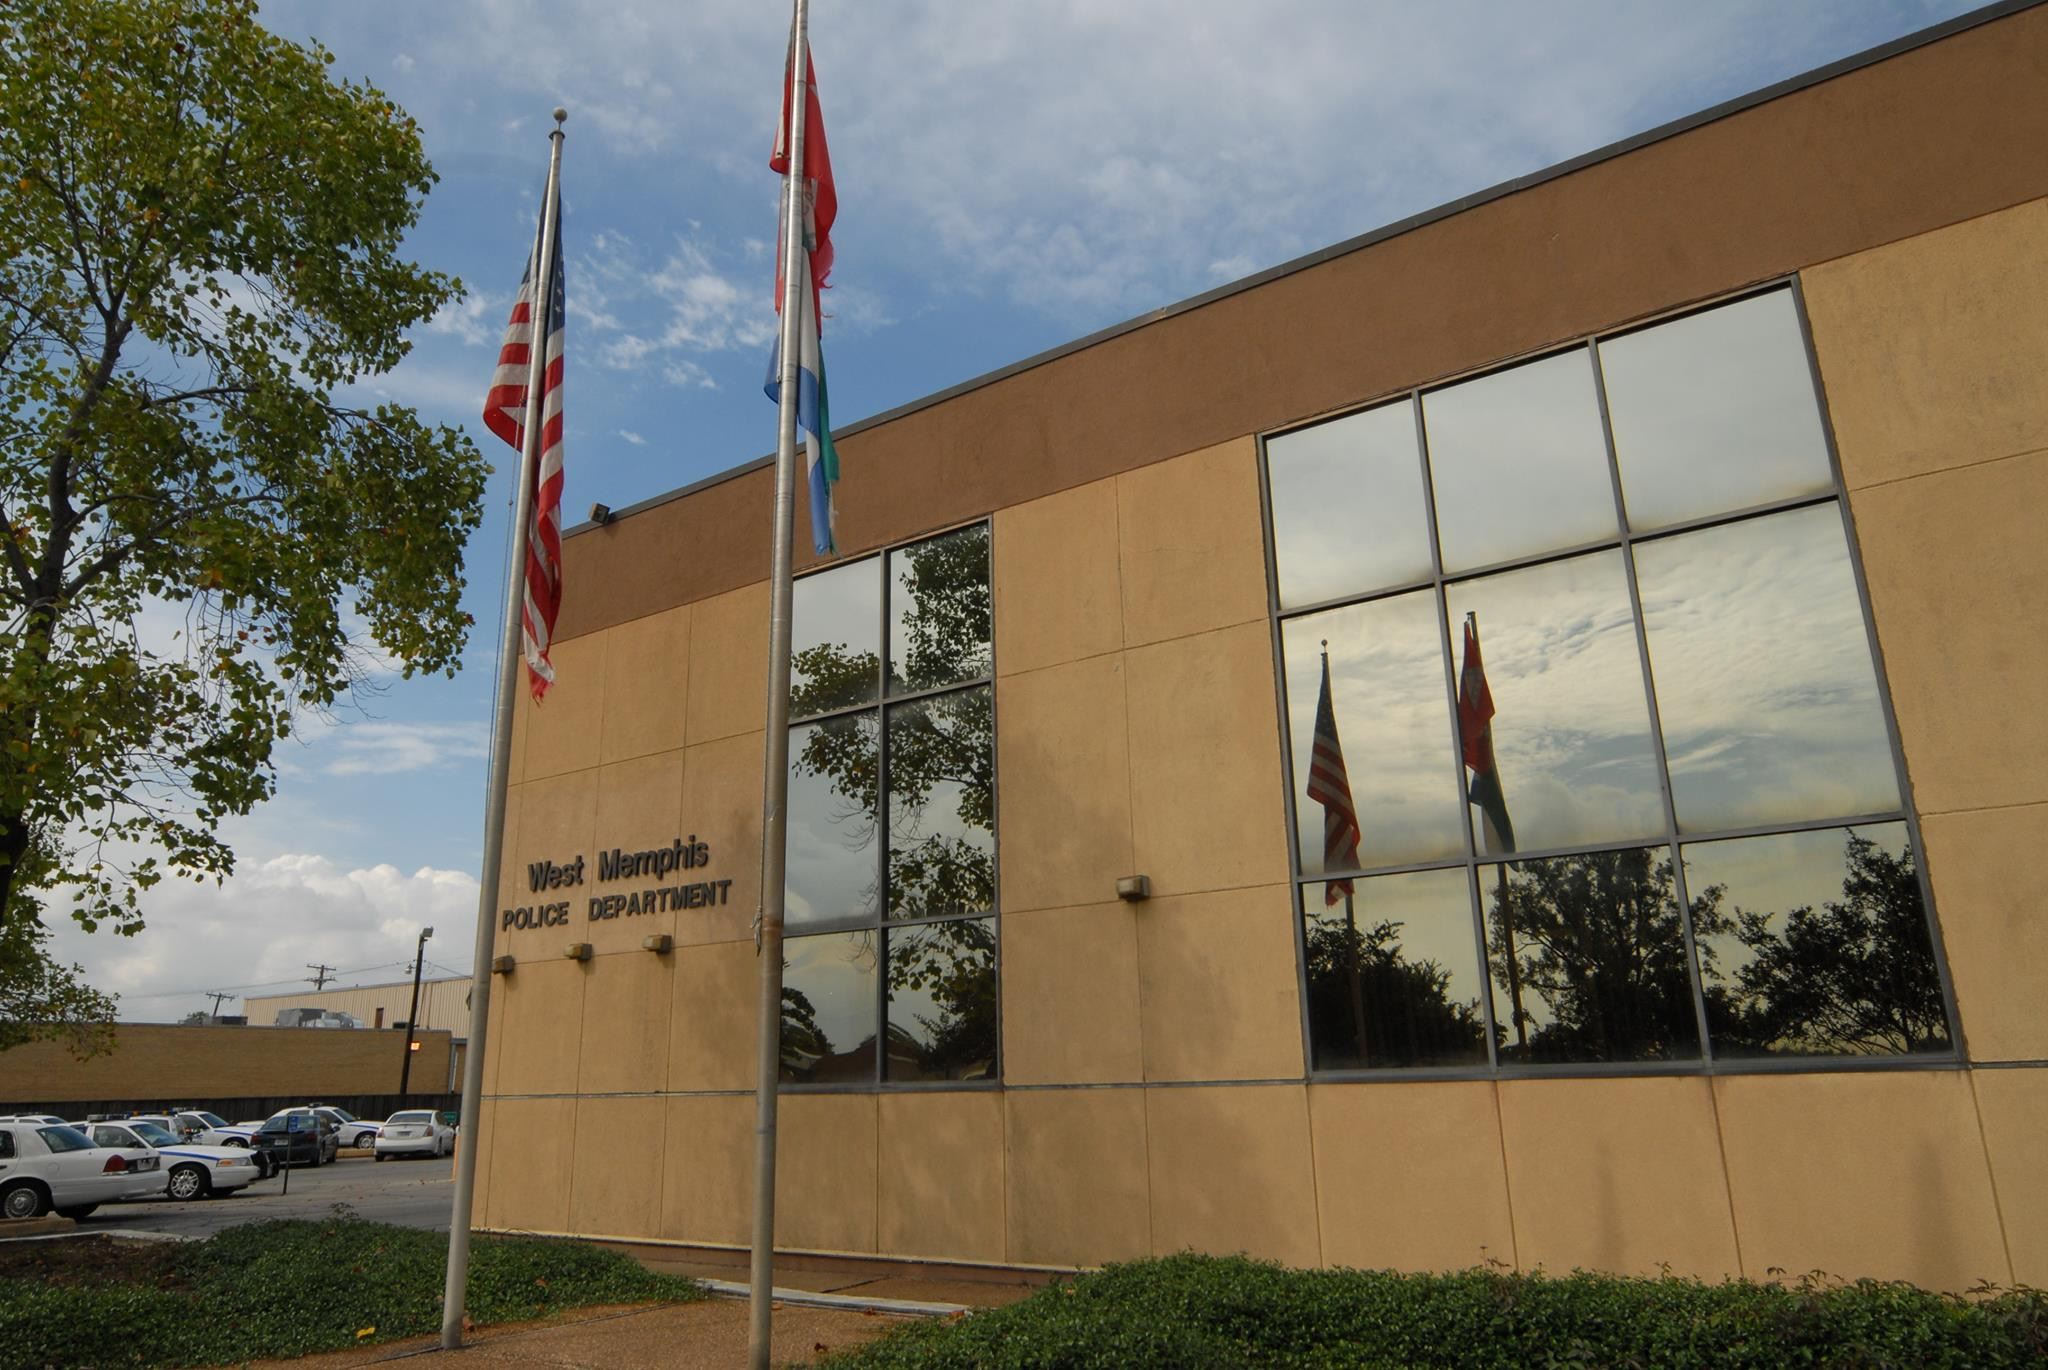 West Memphis Police Department Headquarters